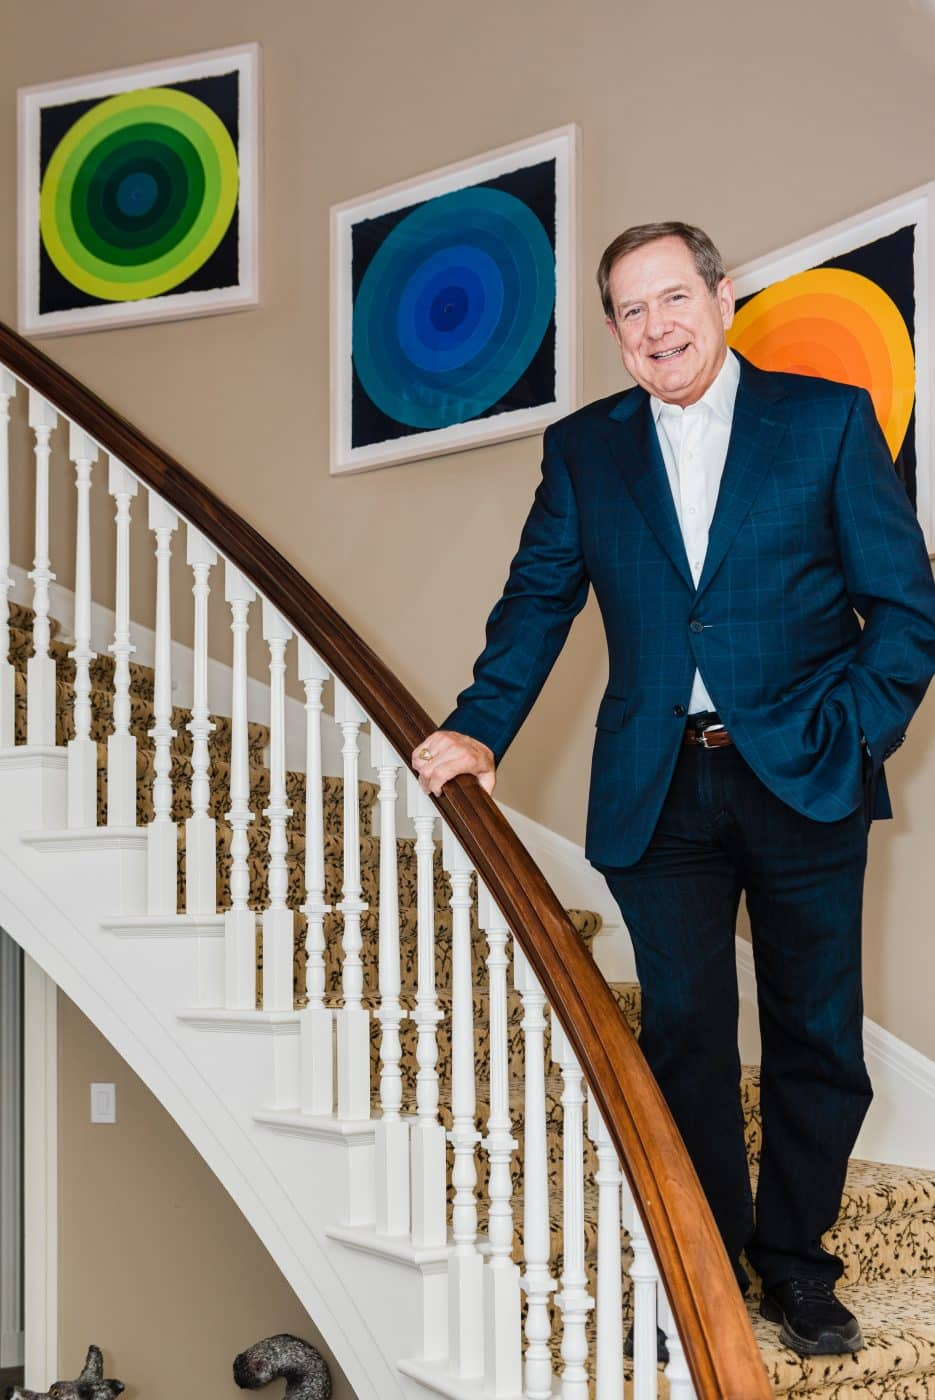 Jordan Schnitzer's home in Portland, Oregon: Schnitzer on his staircase with On Target, 2019, by Polly Apfelbaum